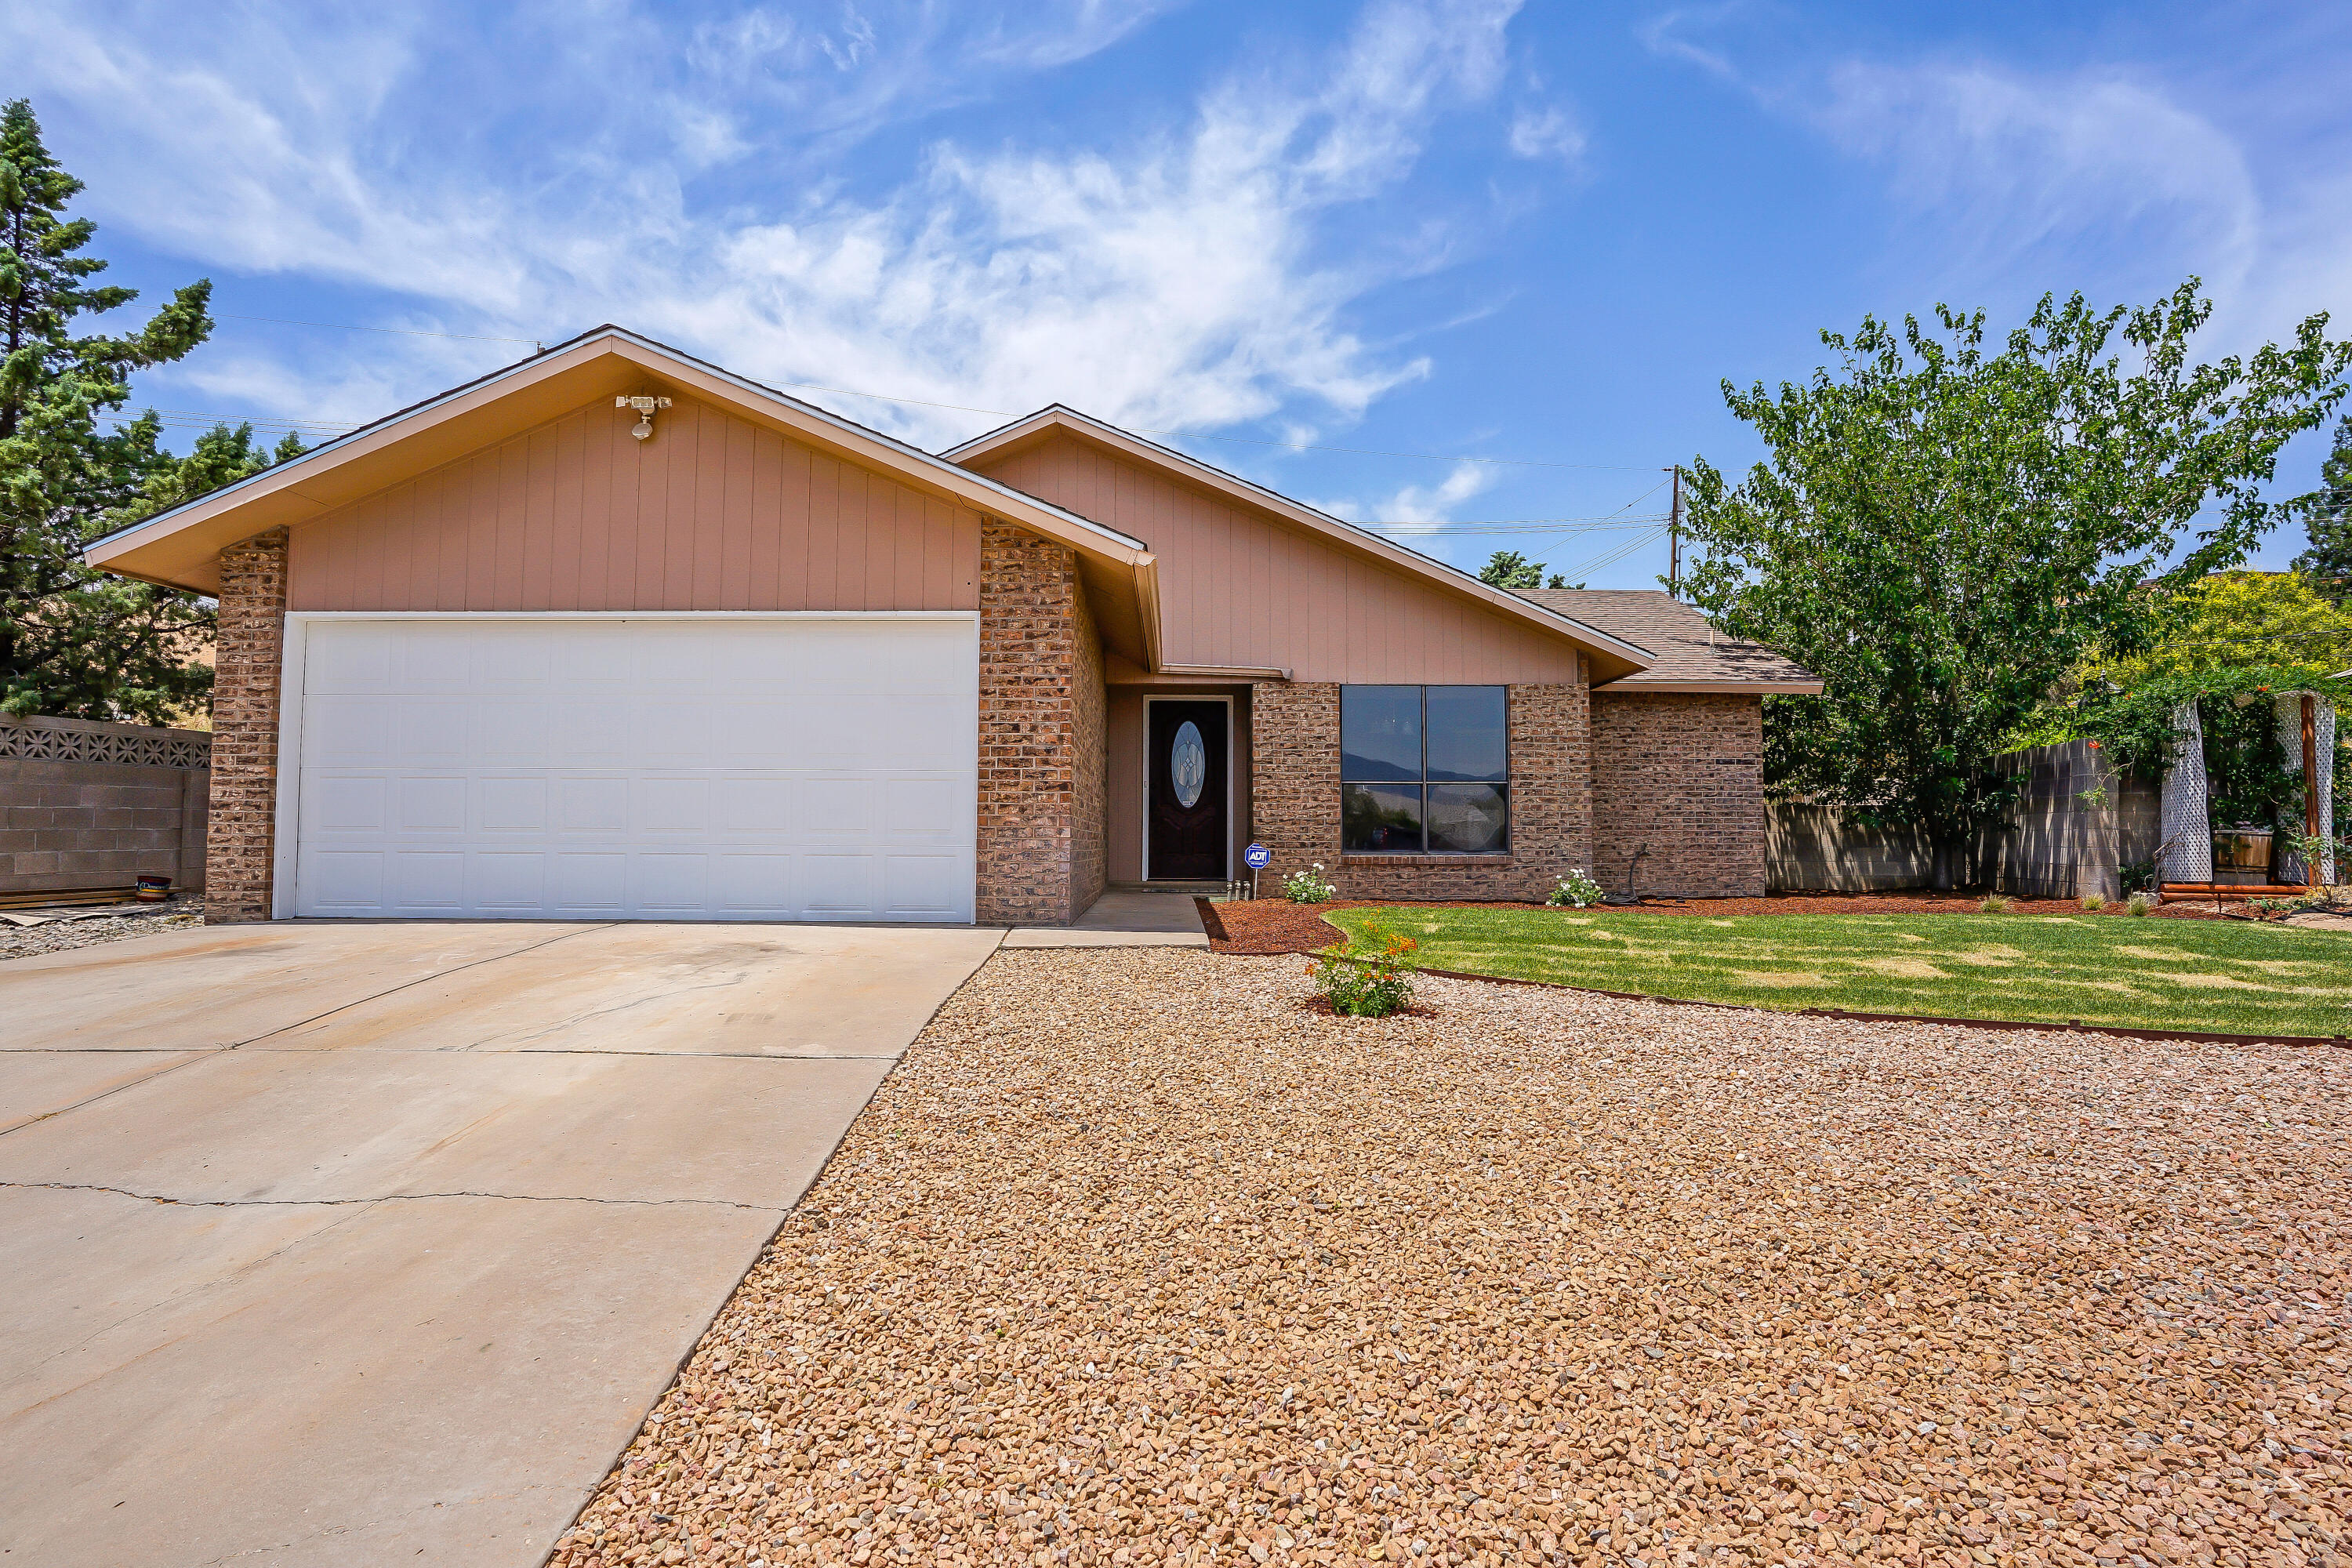 Welcome Home to this beautifully updated single story home located on a quiet street. This lovely home has a bright open floor plan with new carpet throughout and several updates.  Don't miss out, it won't be on the market long!!